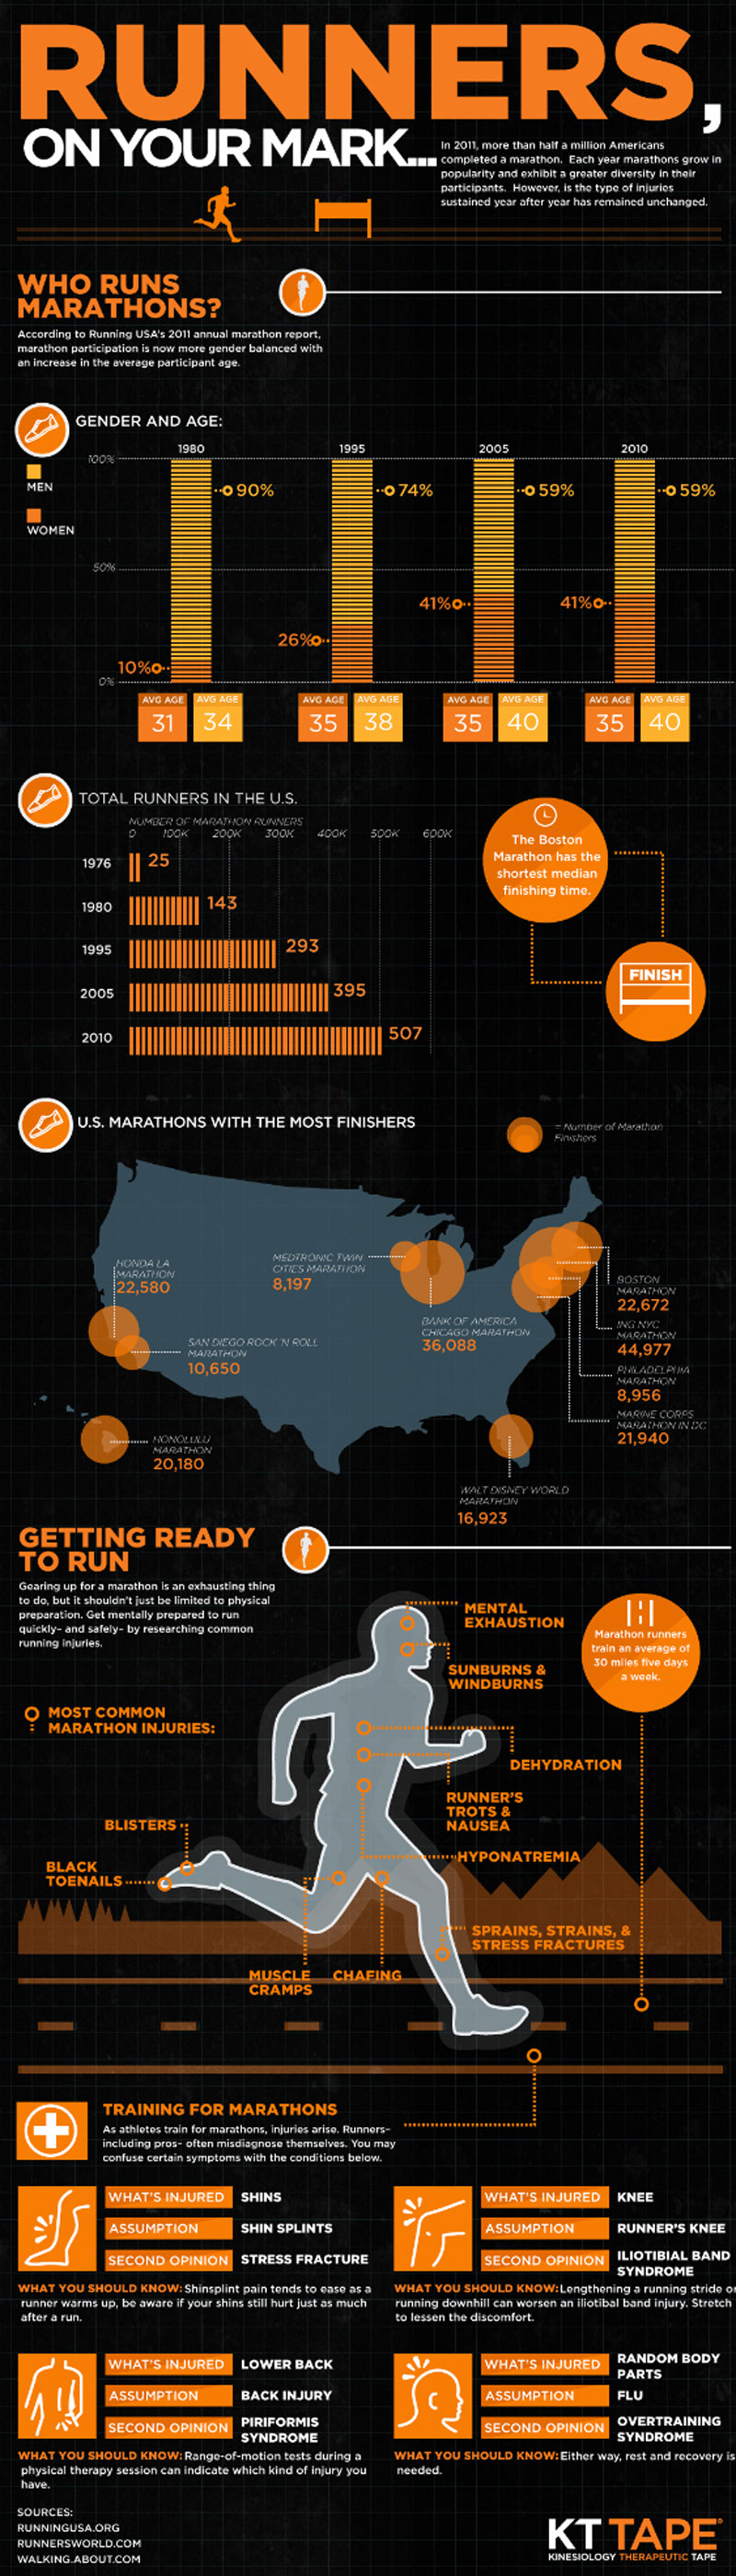 Runners-On-Your-Mark-infographic